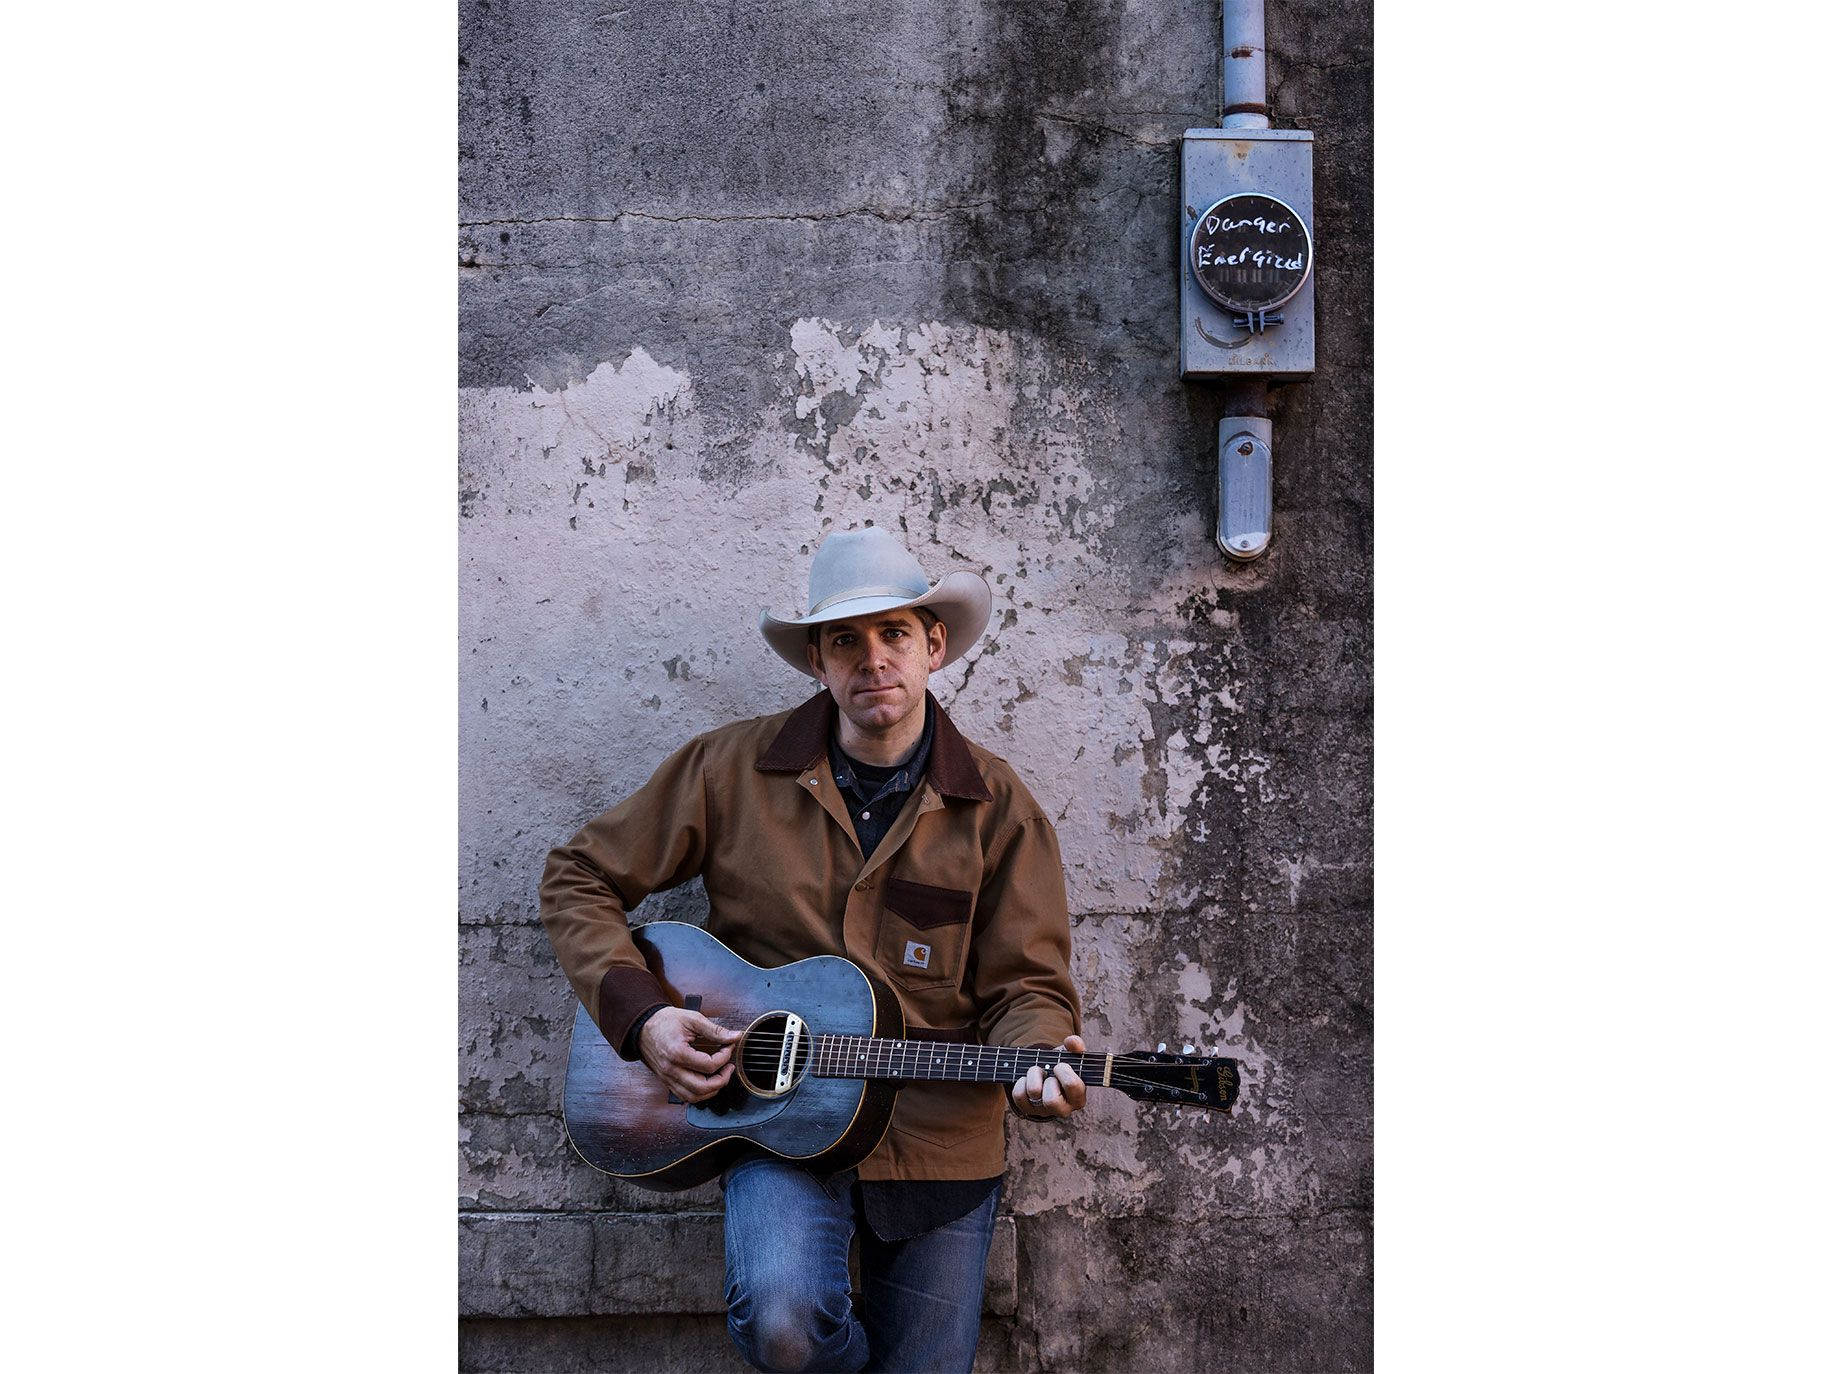 Texas native Andy Hedges keeps tradition alive with his poetry and music.